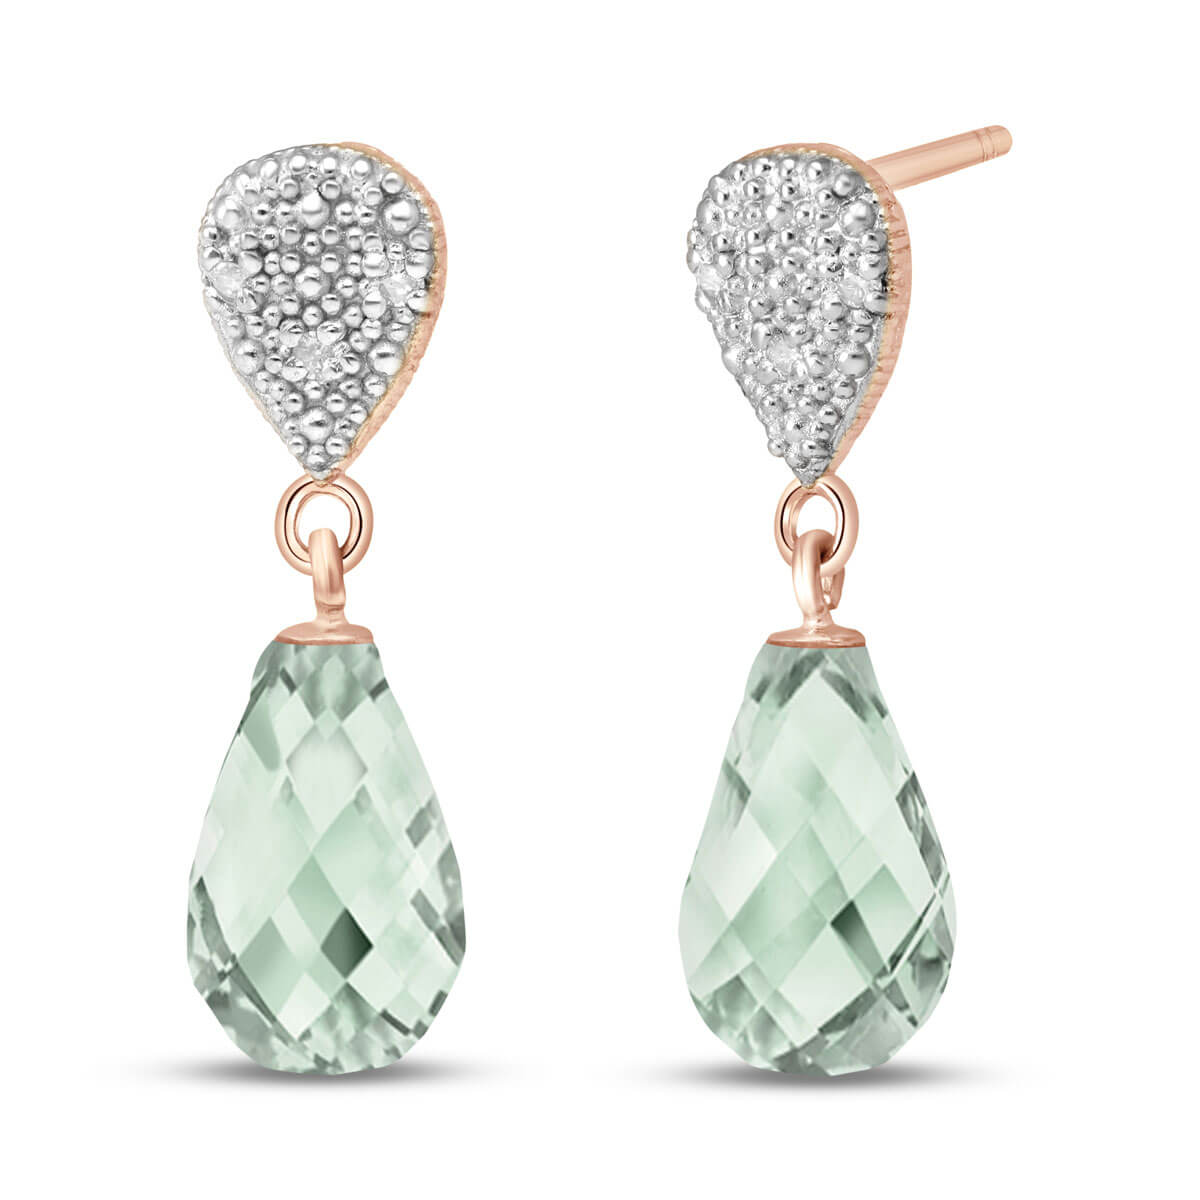 Green Amethyst & Diamond Droplet Earrings in 9ct Rose Gold